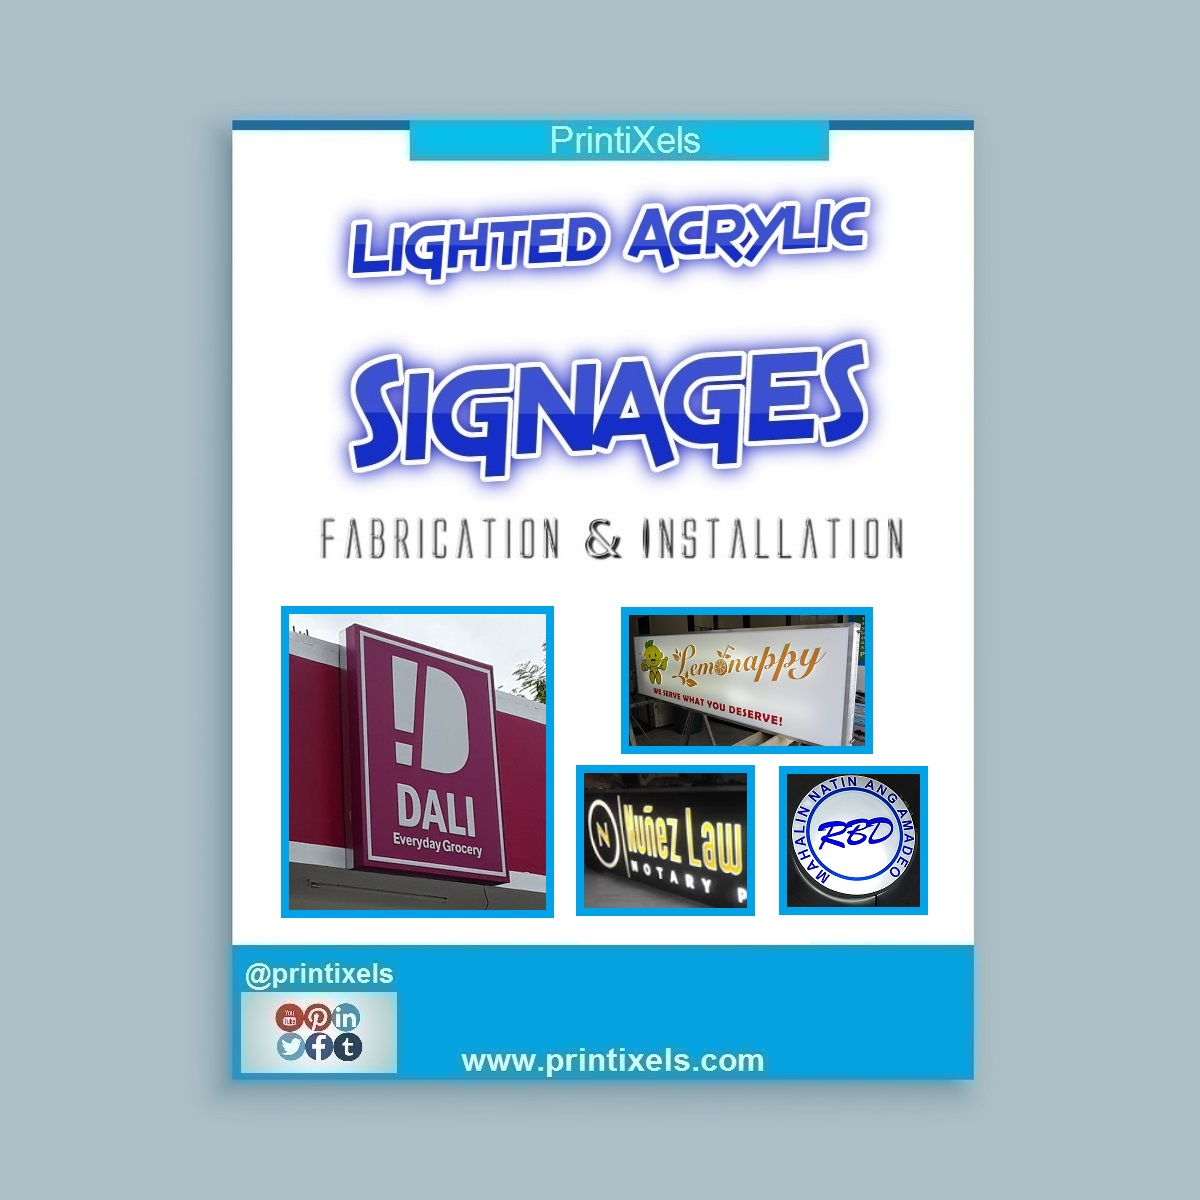 Lighted Acrylic Signages - Fabrication & Installation